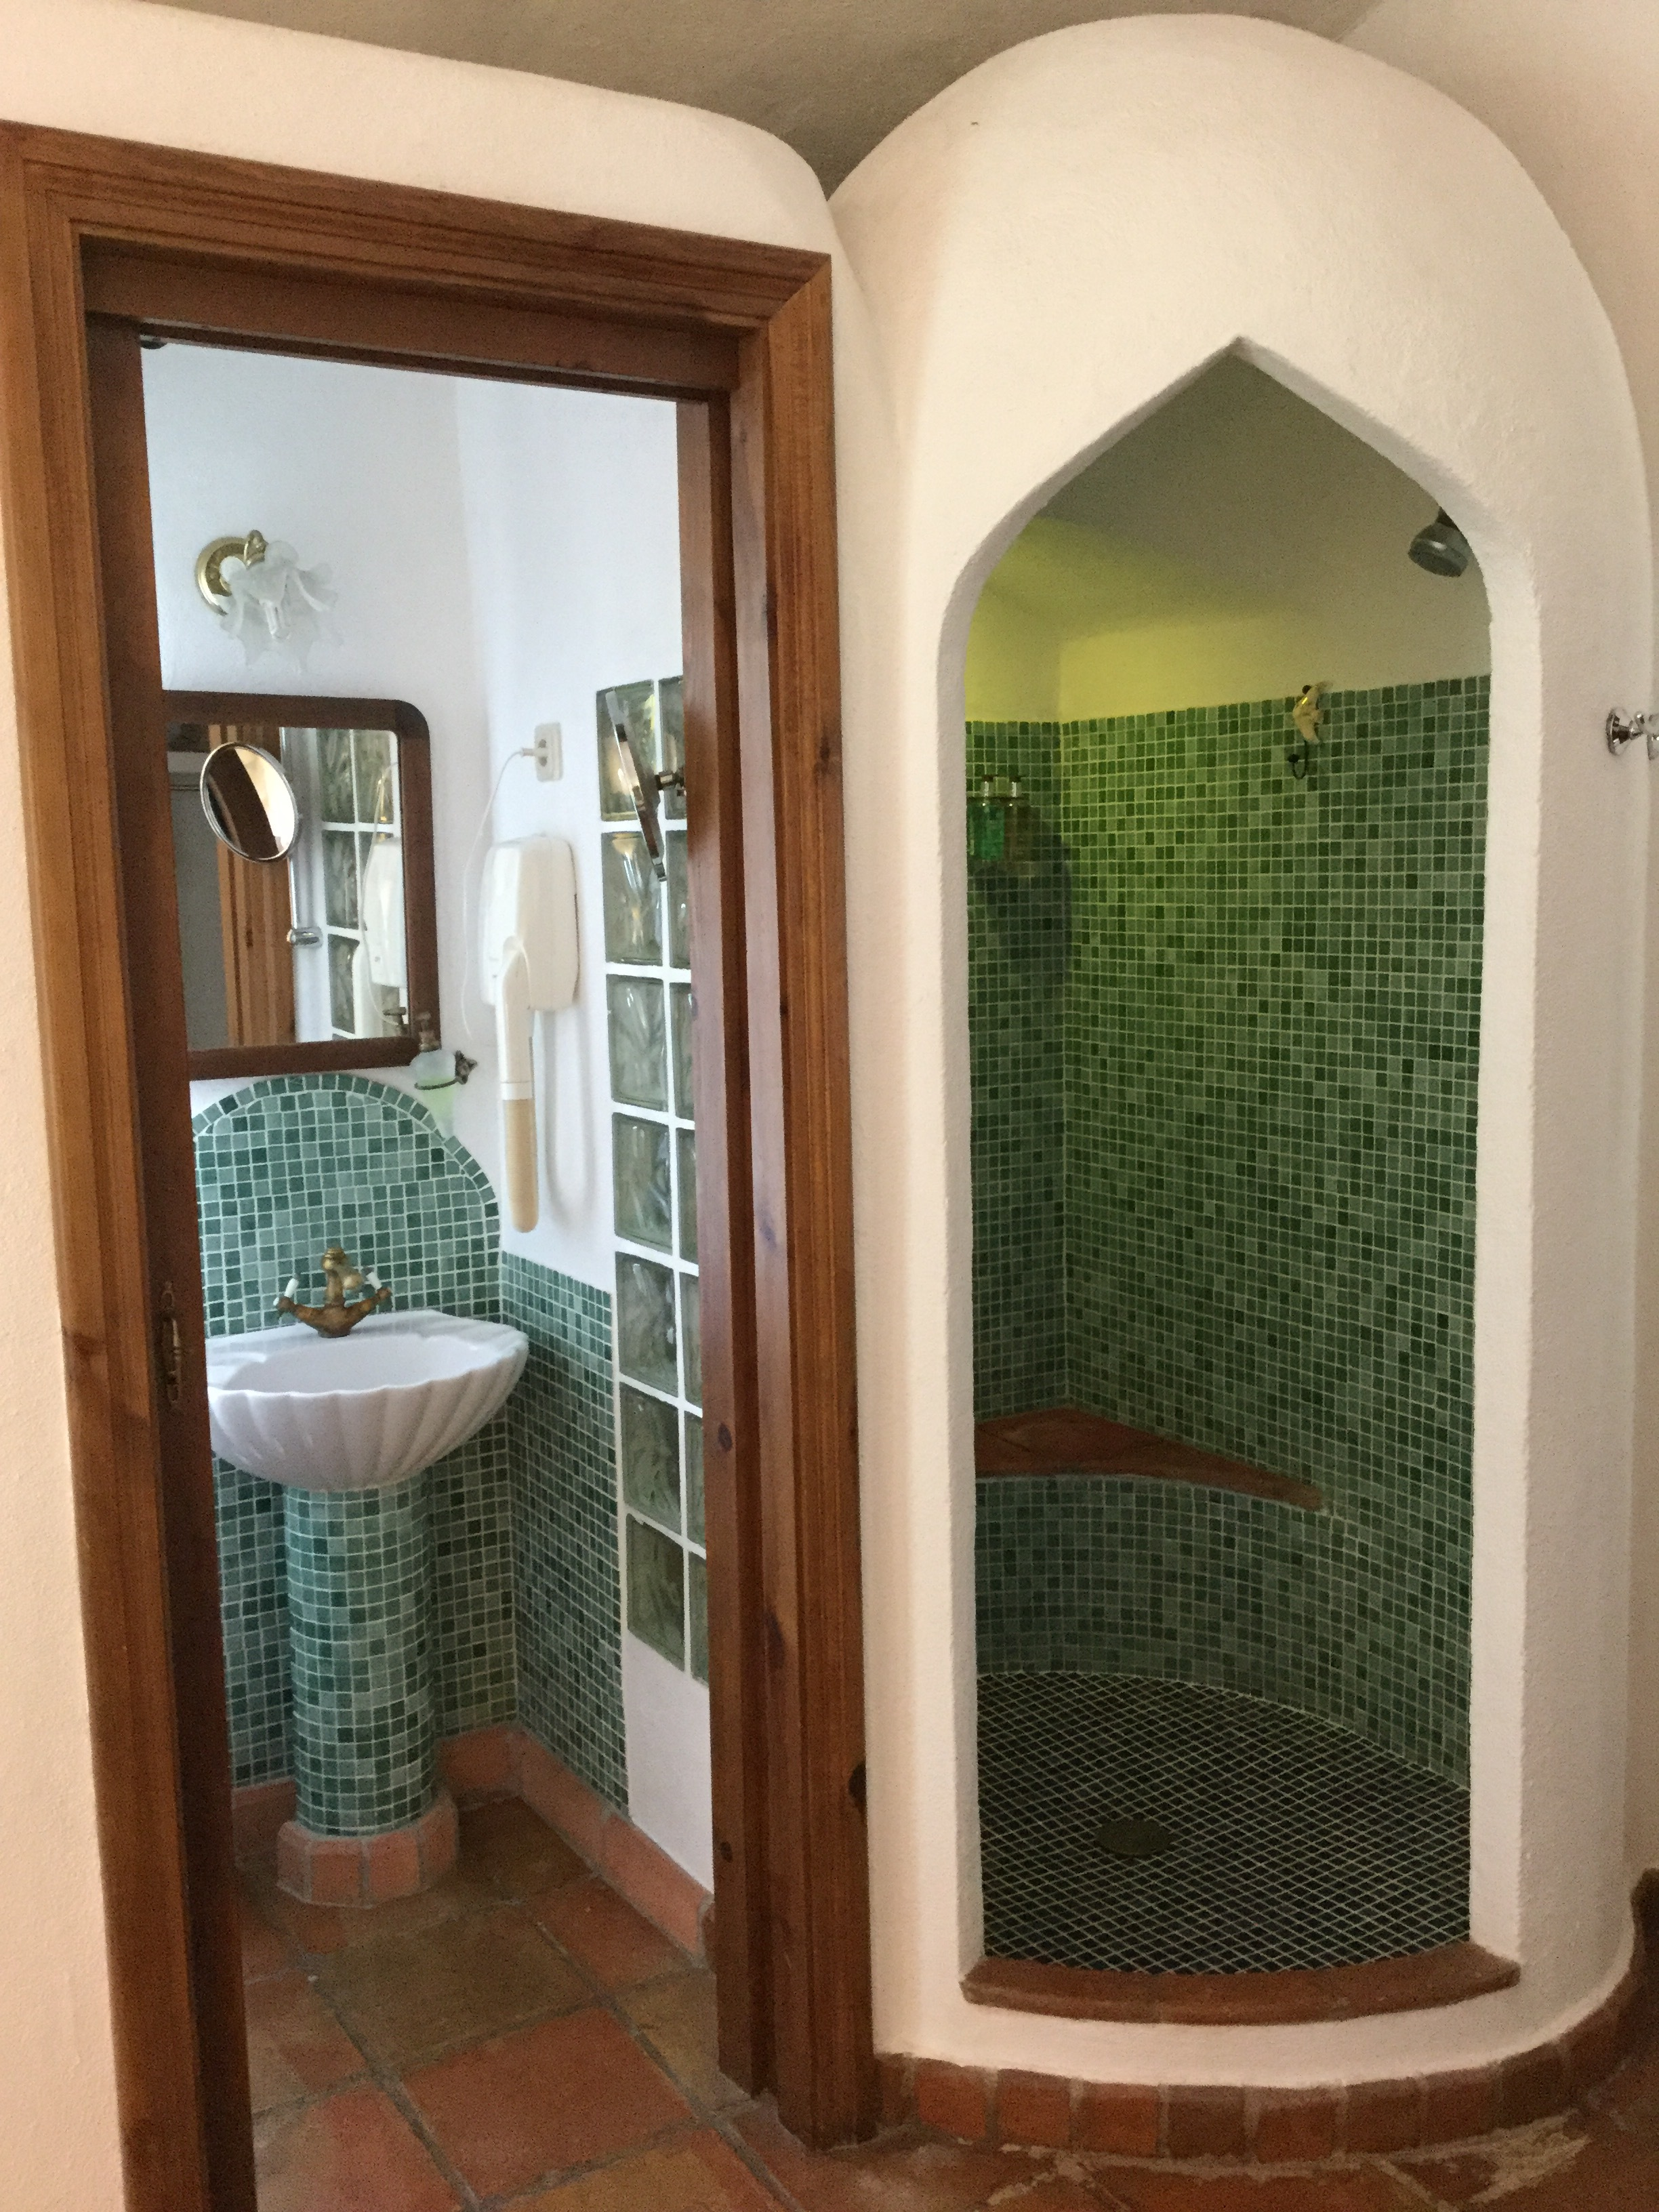 The bathrooms pay tribute to the Moorish heritage of the region.